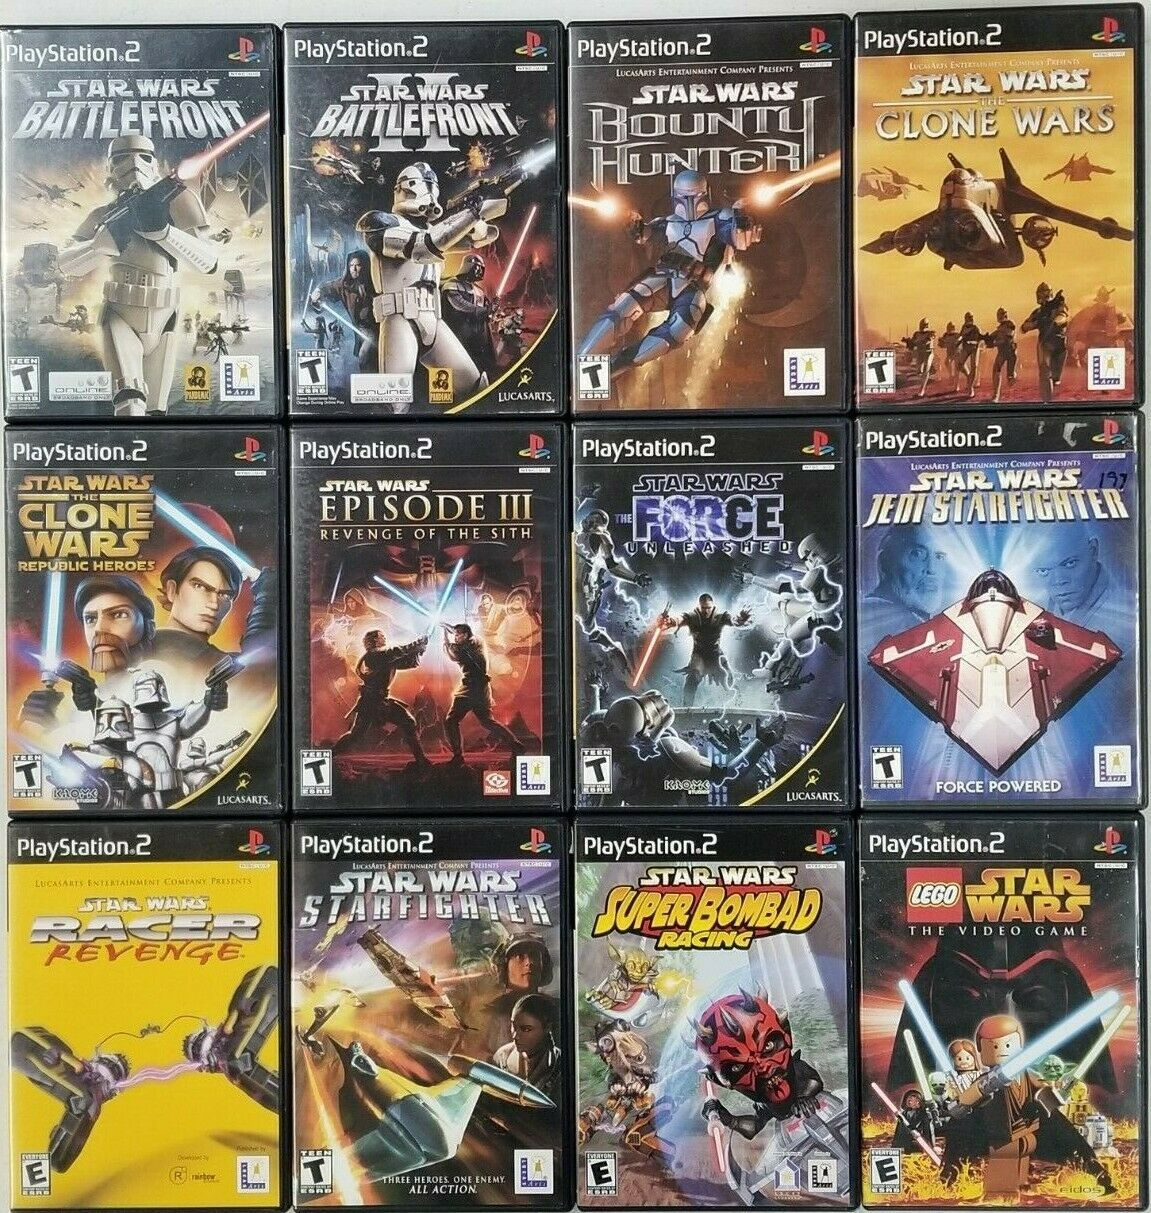 Star Wars Games Playstation 2 Ps2 Tested Star Wars Games Playstation Playstation 2